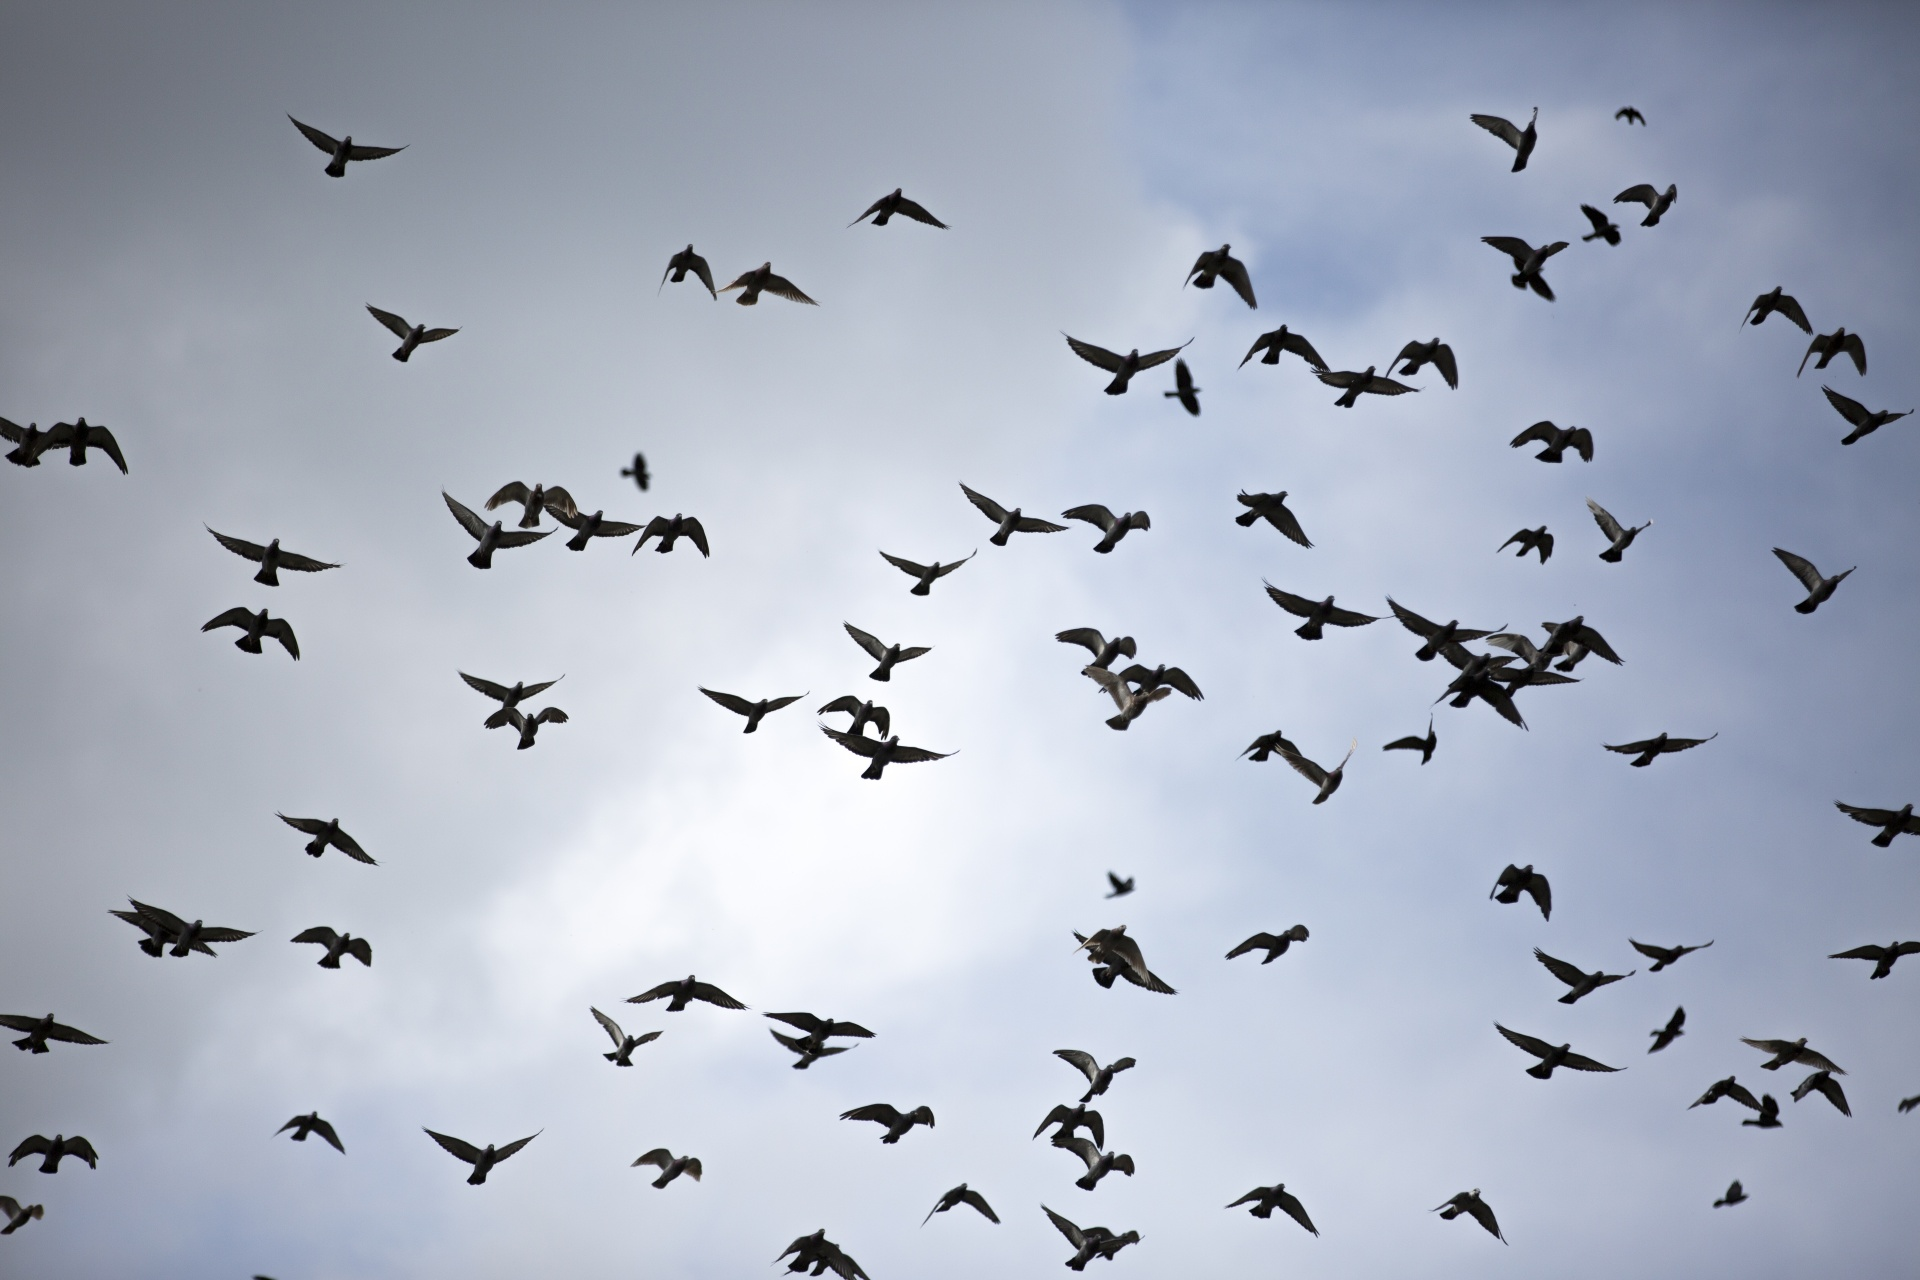 Flying Birds Free Stock Photo - Public Domain Pictures